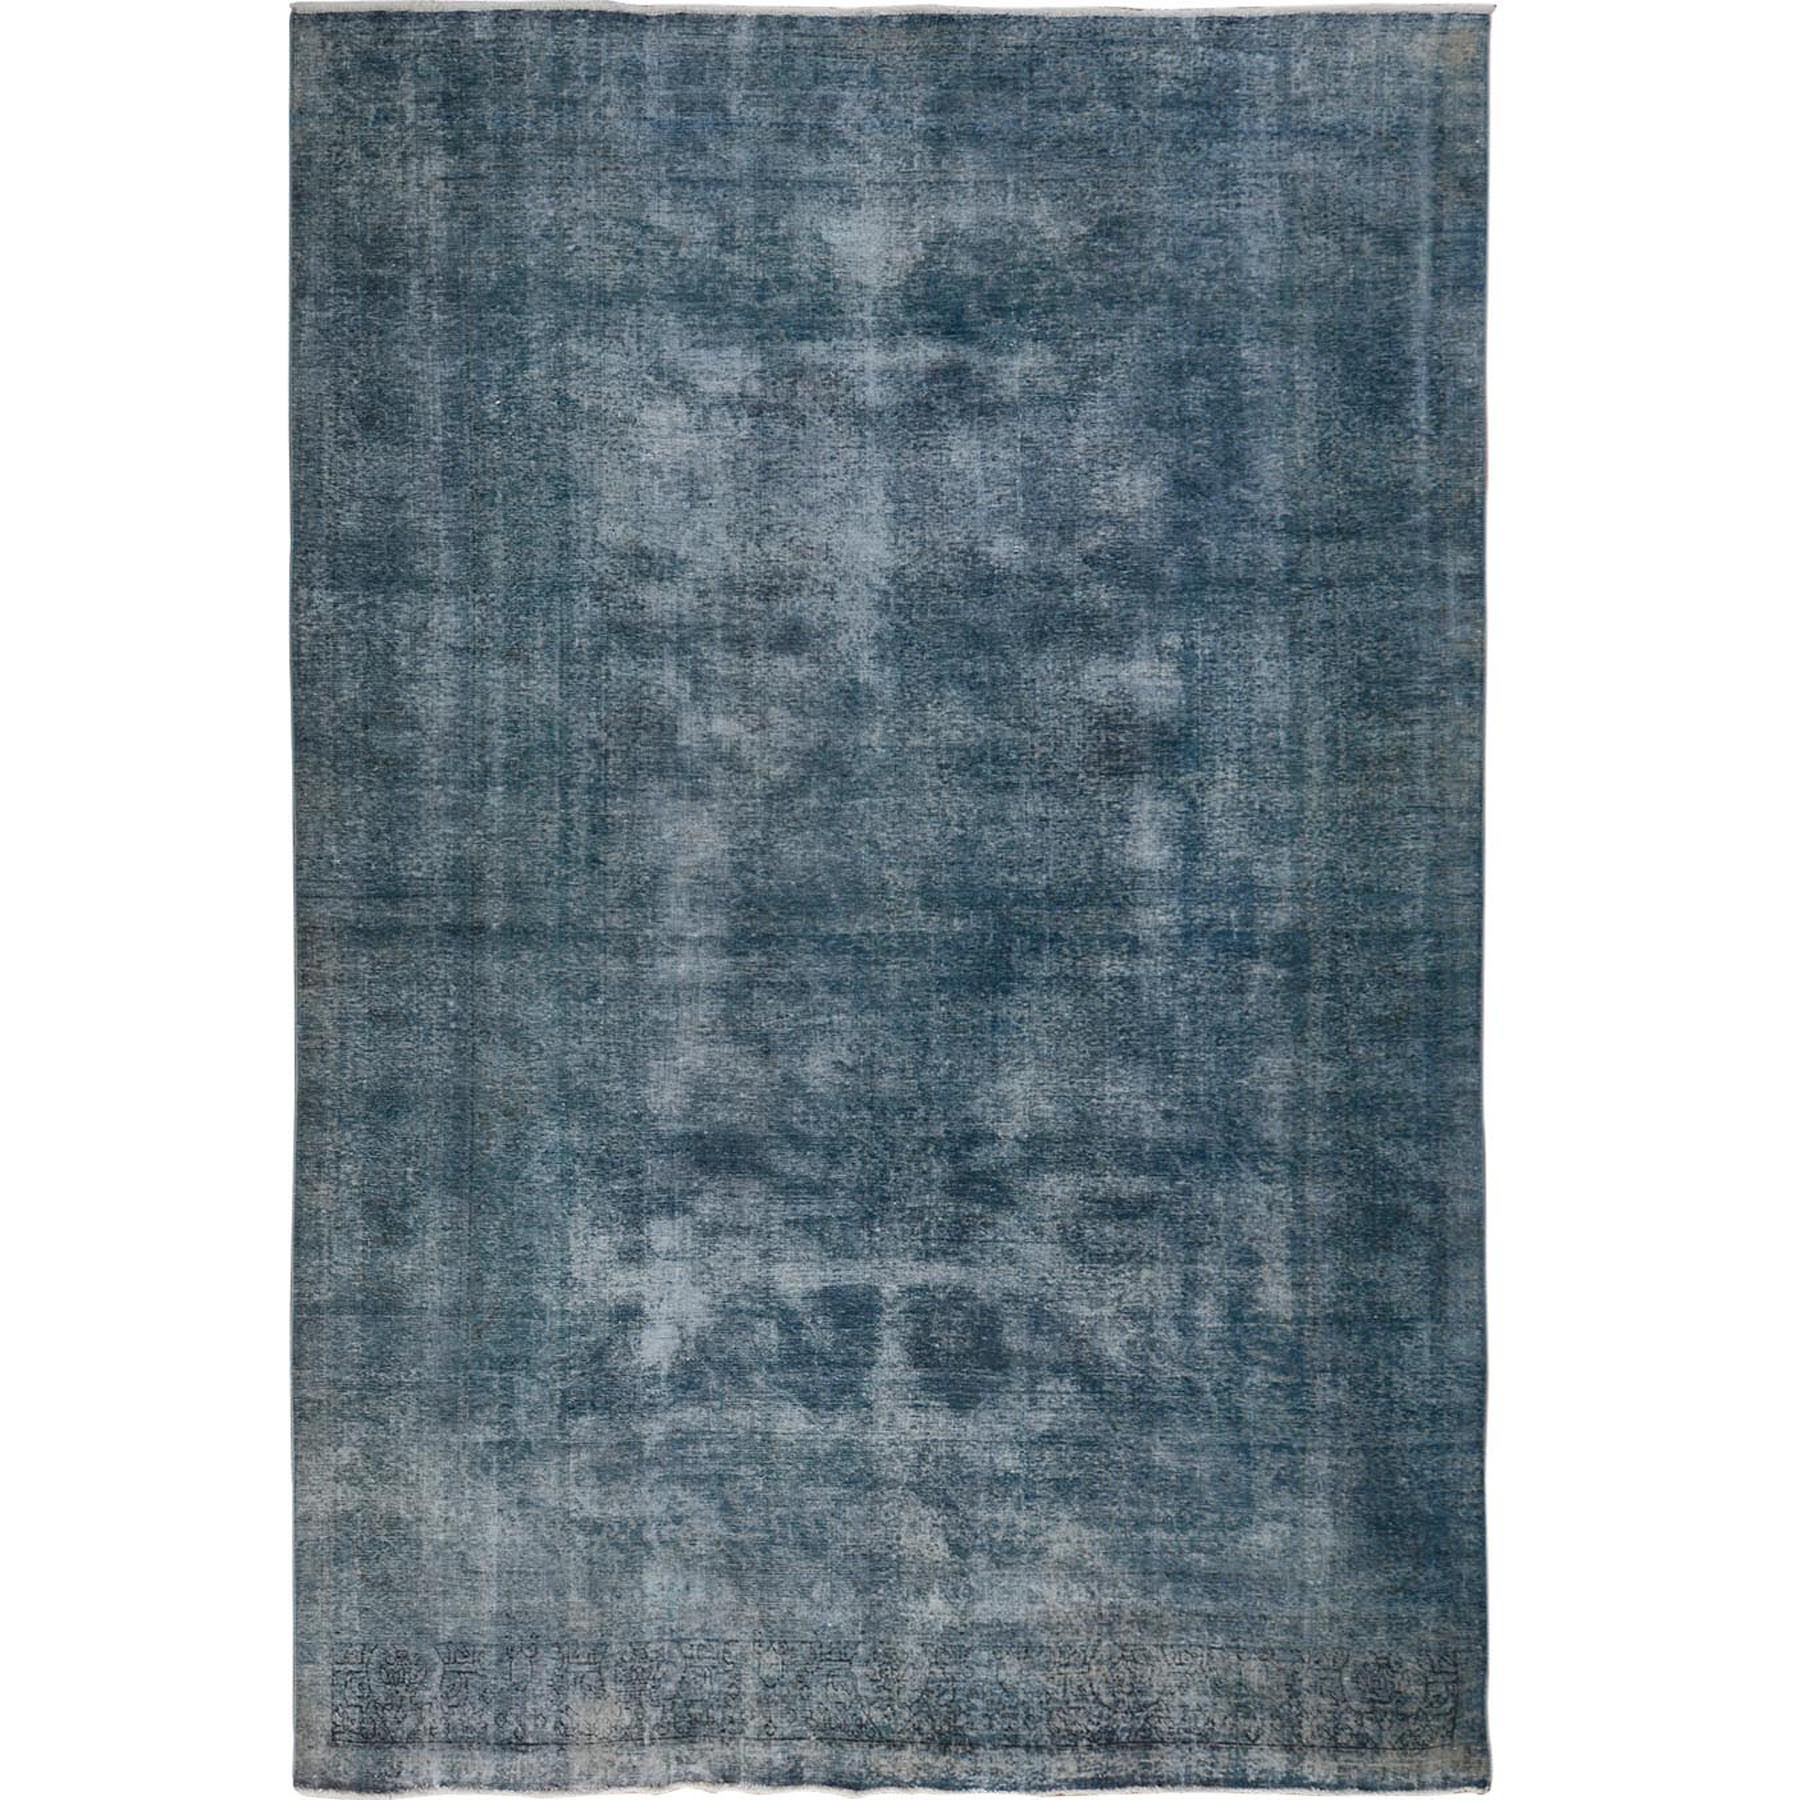 "9'6""x12'9"" Dark Blue Overdyed Worn Down and Vintage Persian Tabriz Hand Woven Oriental Rug"